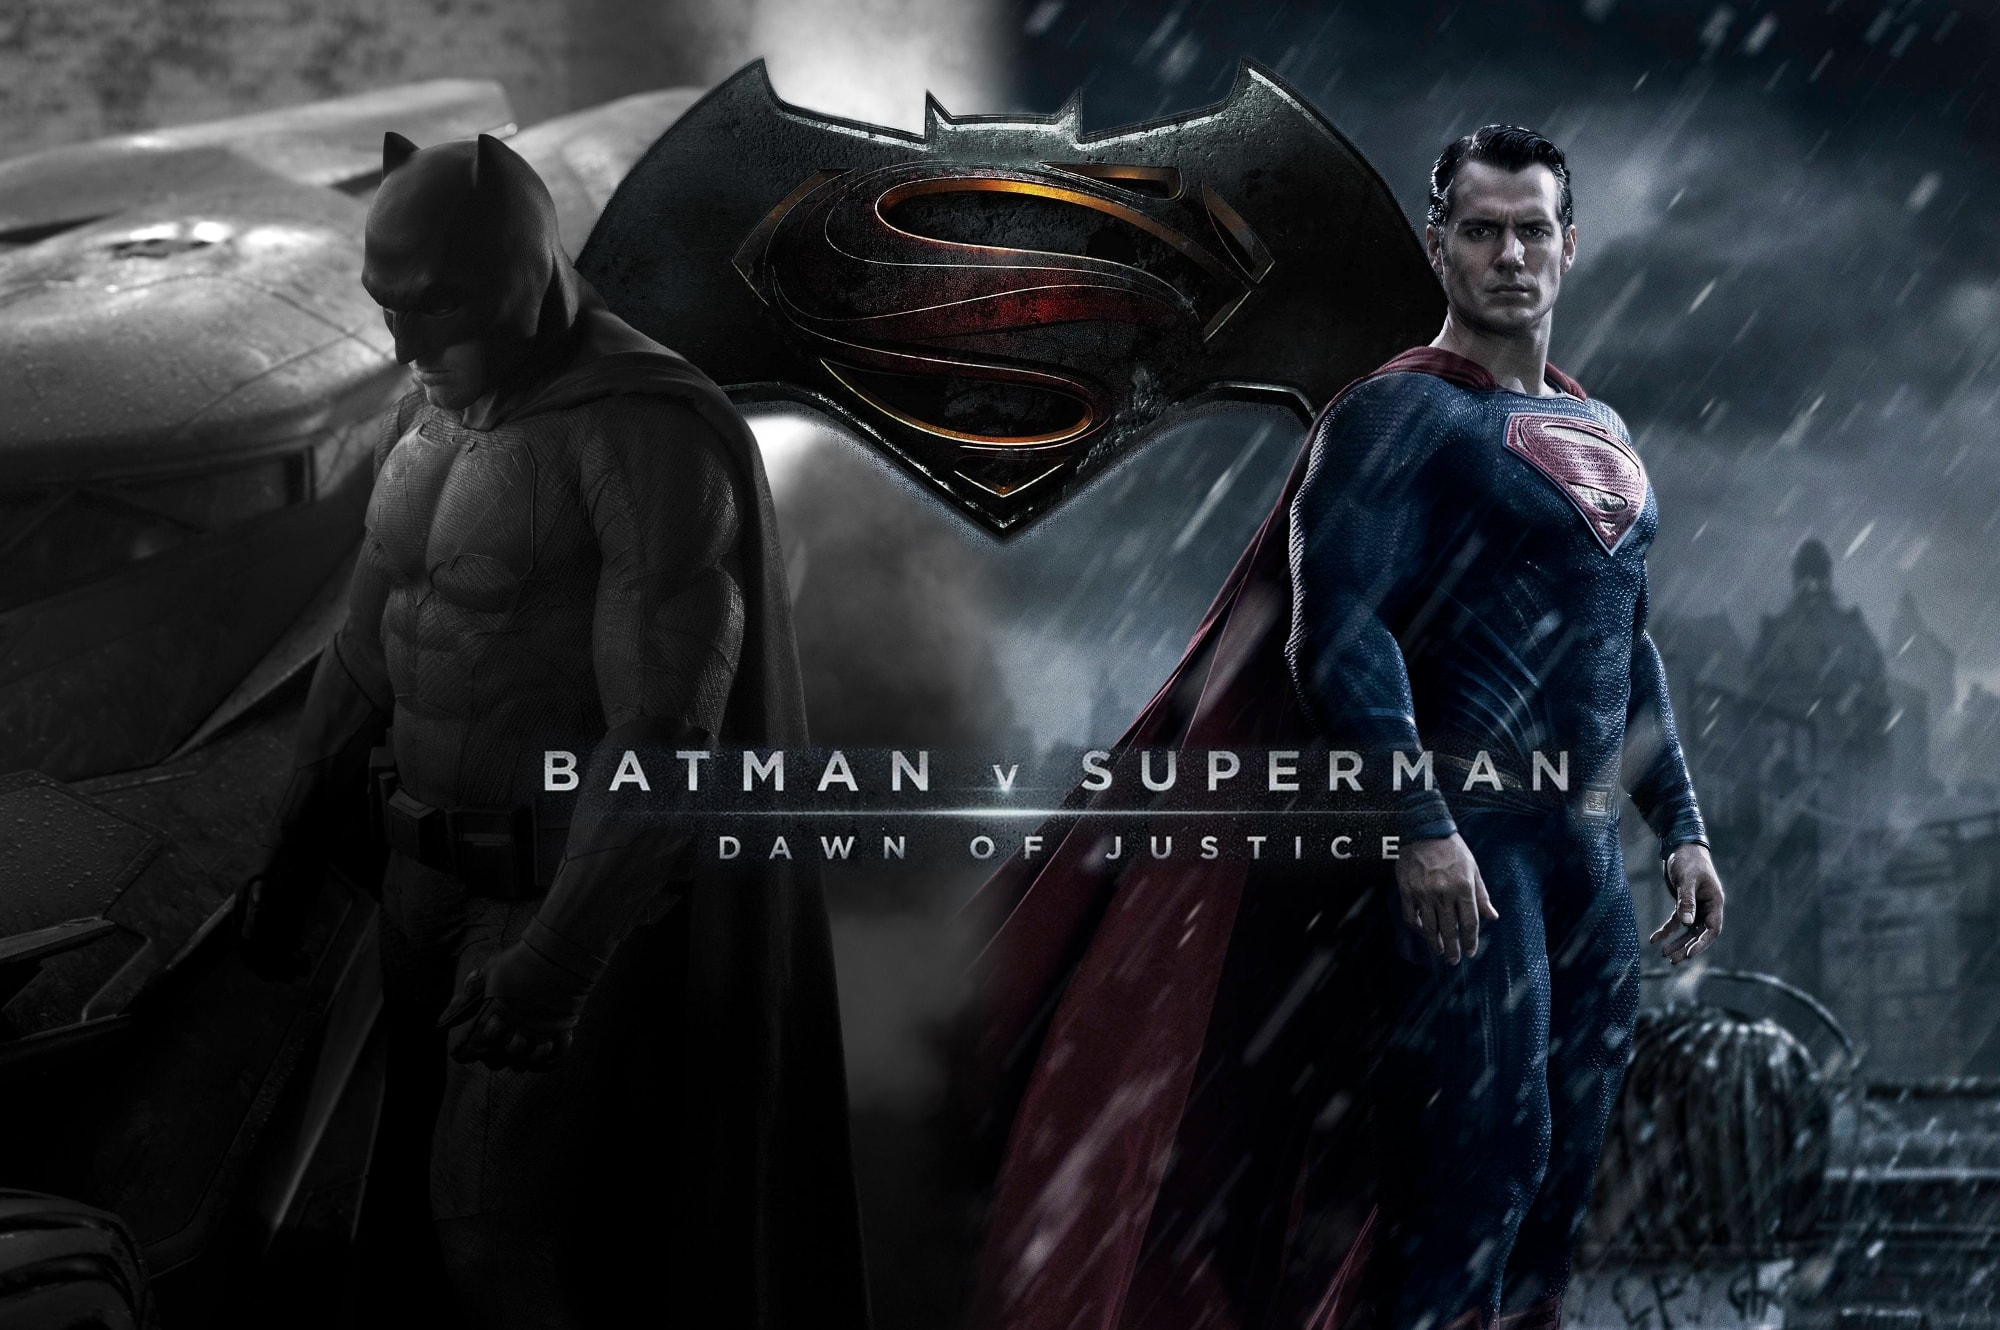 Batman Vs Superman Dawn Of Justice HD Wallpapers 7wallpapersnet 2000x1330